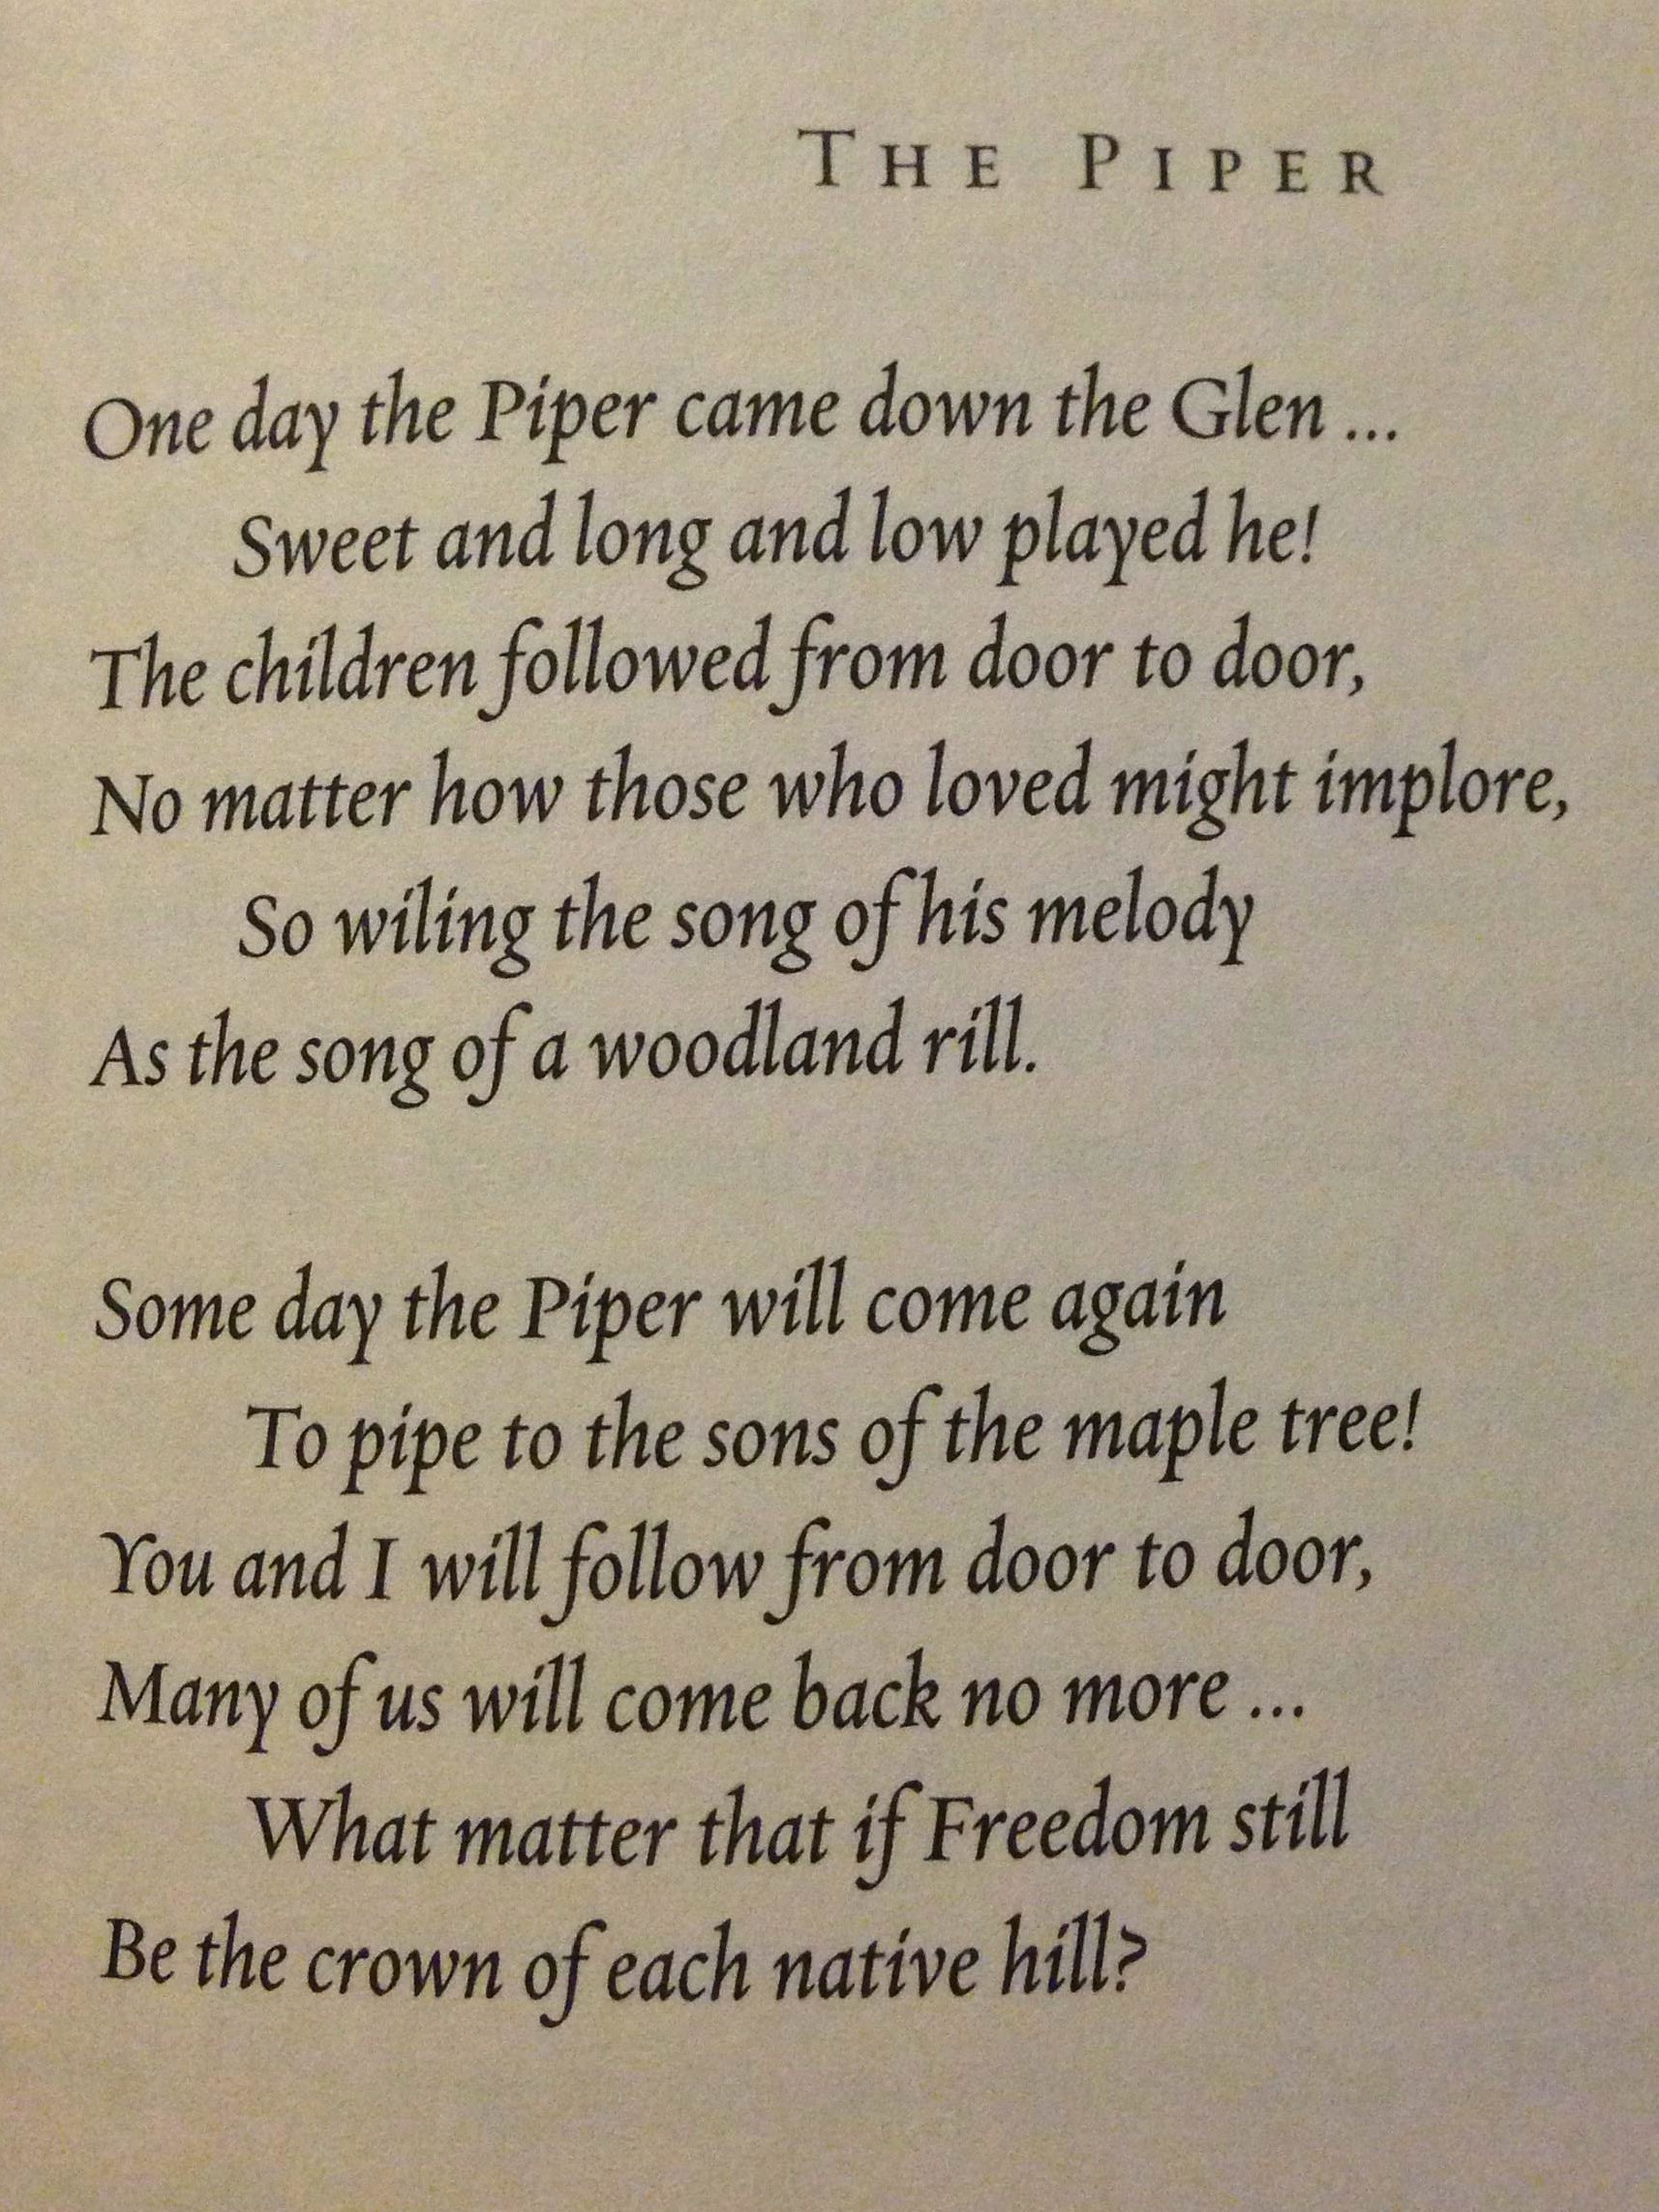 The Piper by Walter Blythe (Montgomery)